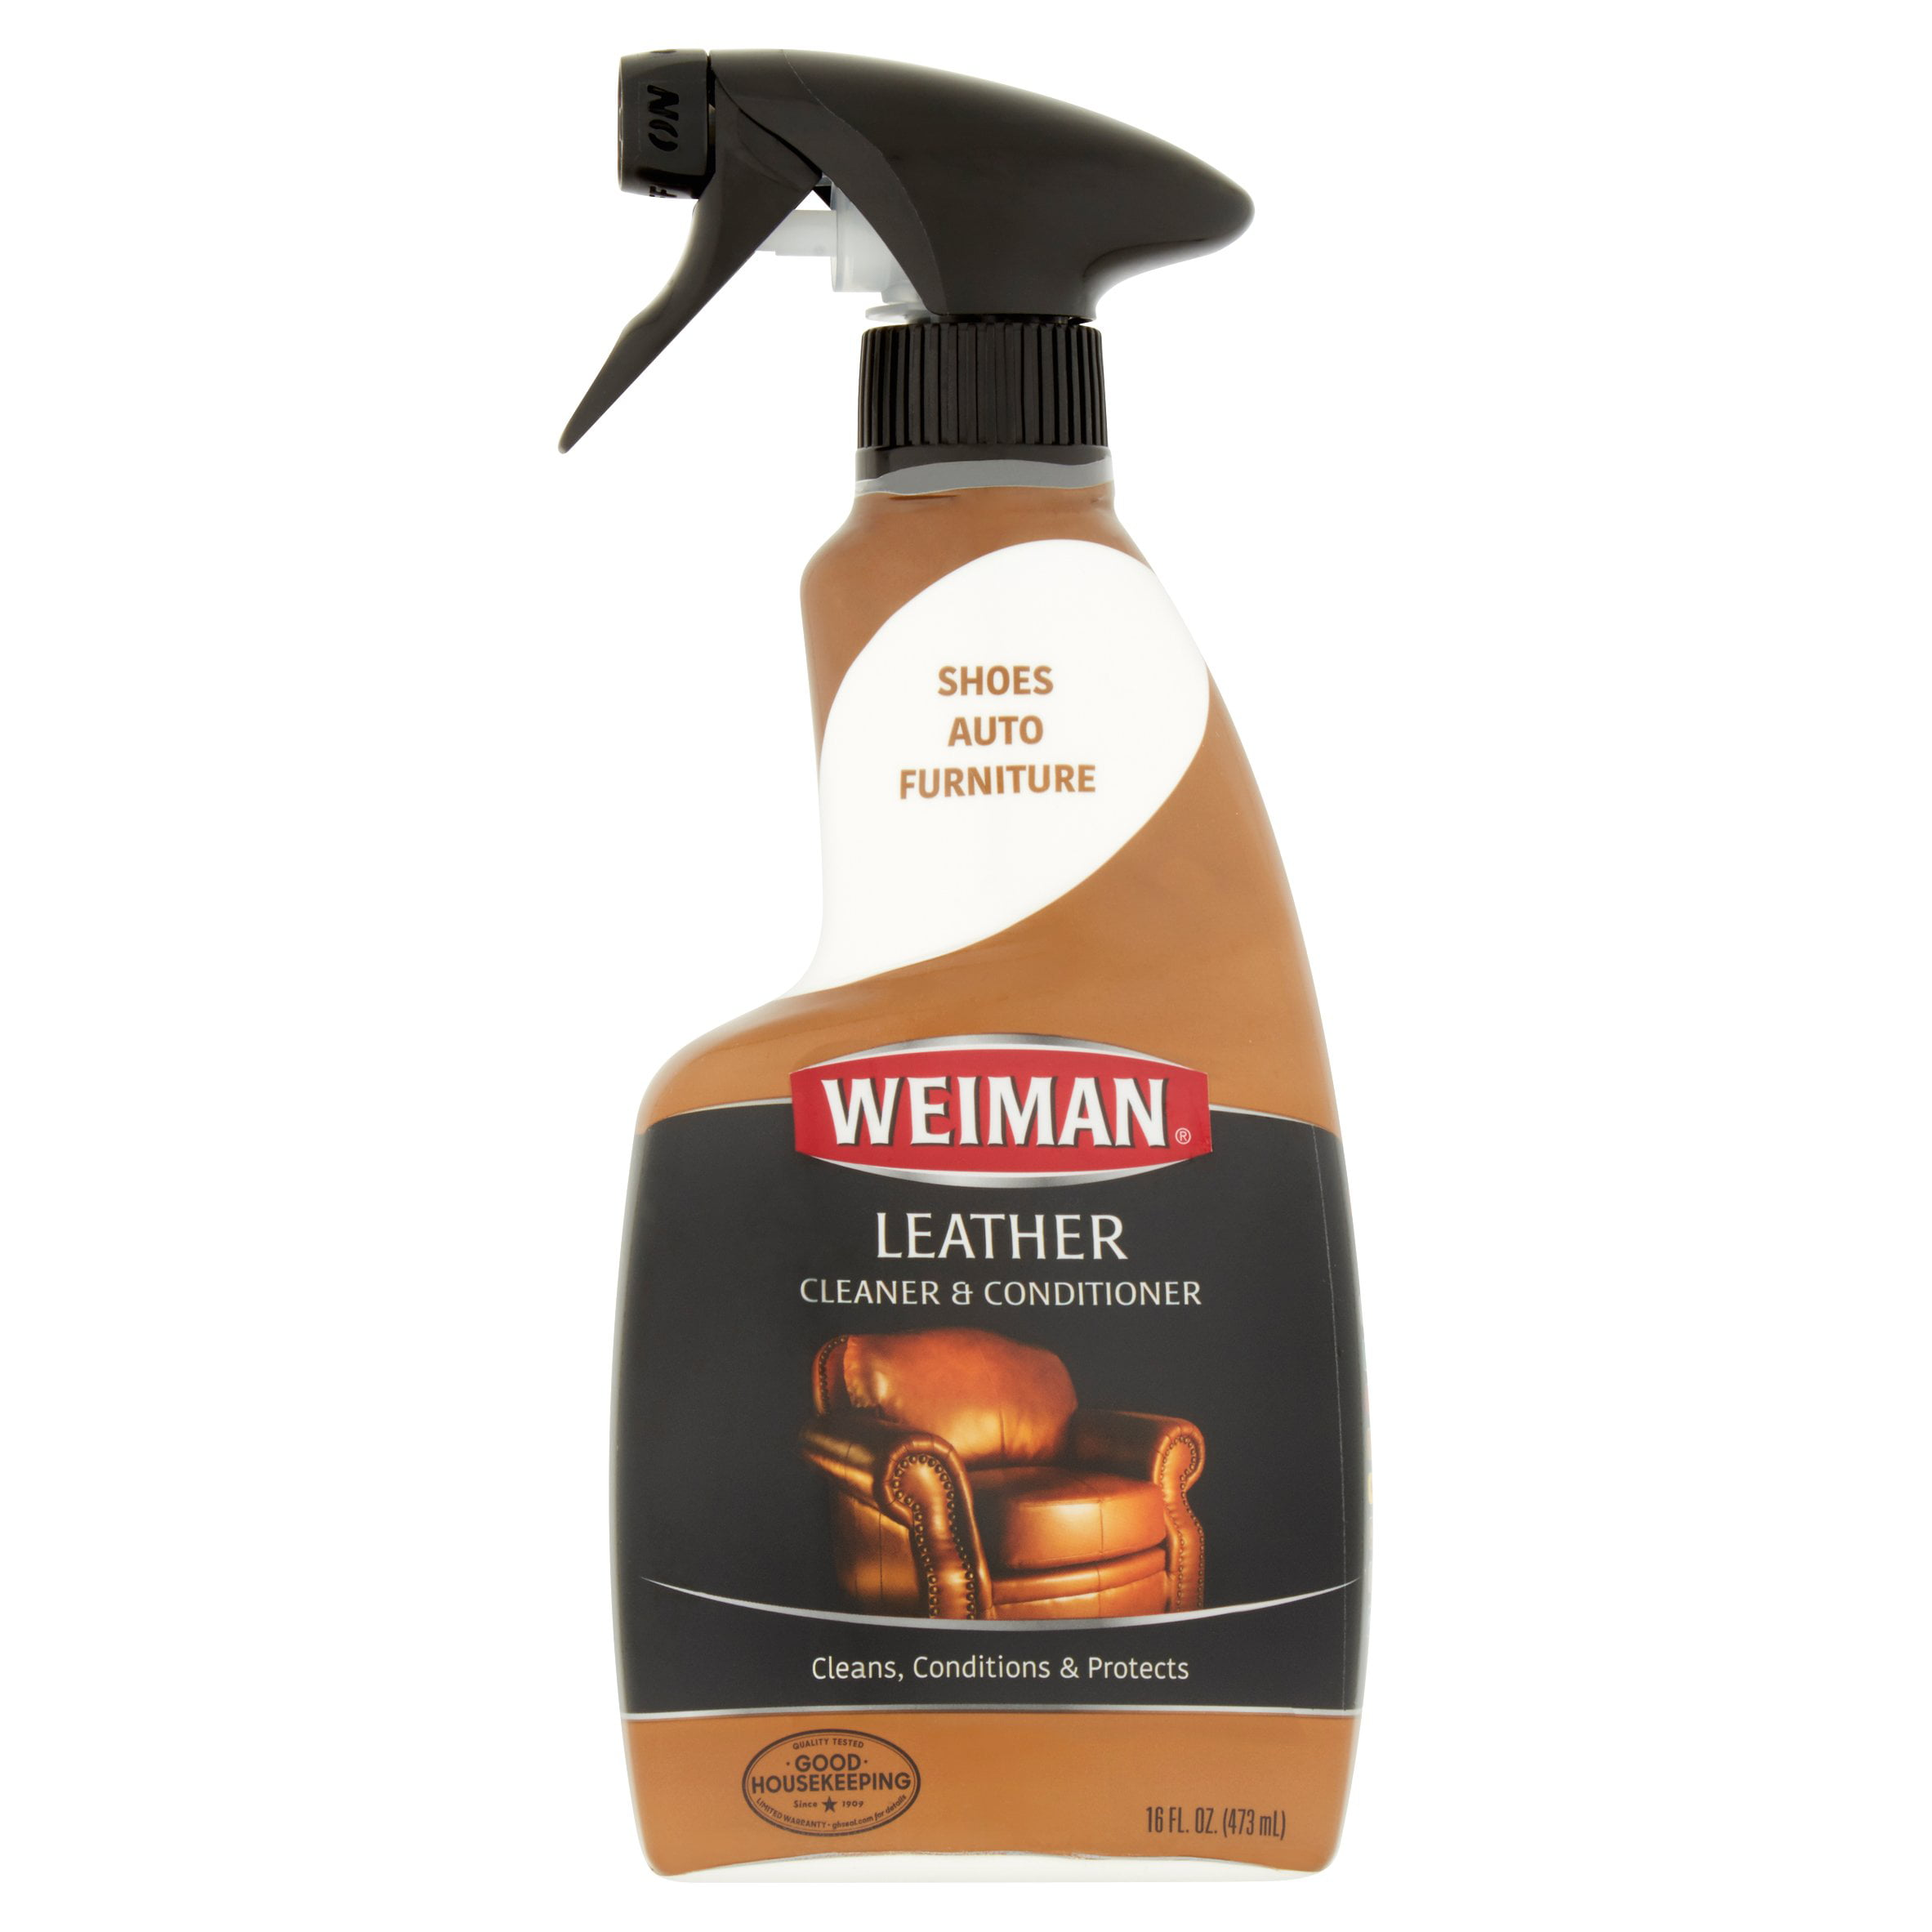 weiman leather cleaner conditioner 16 fl oz ebay. Black Bedroom Furniture Sets. Home Design Ideas